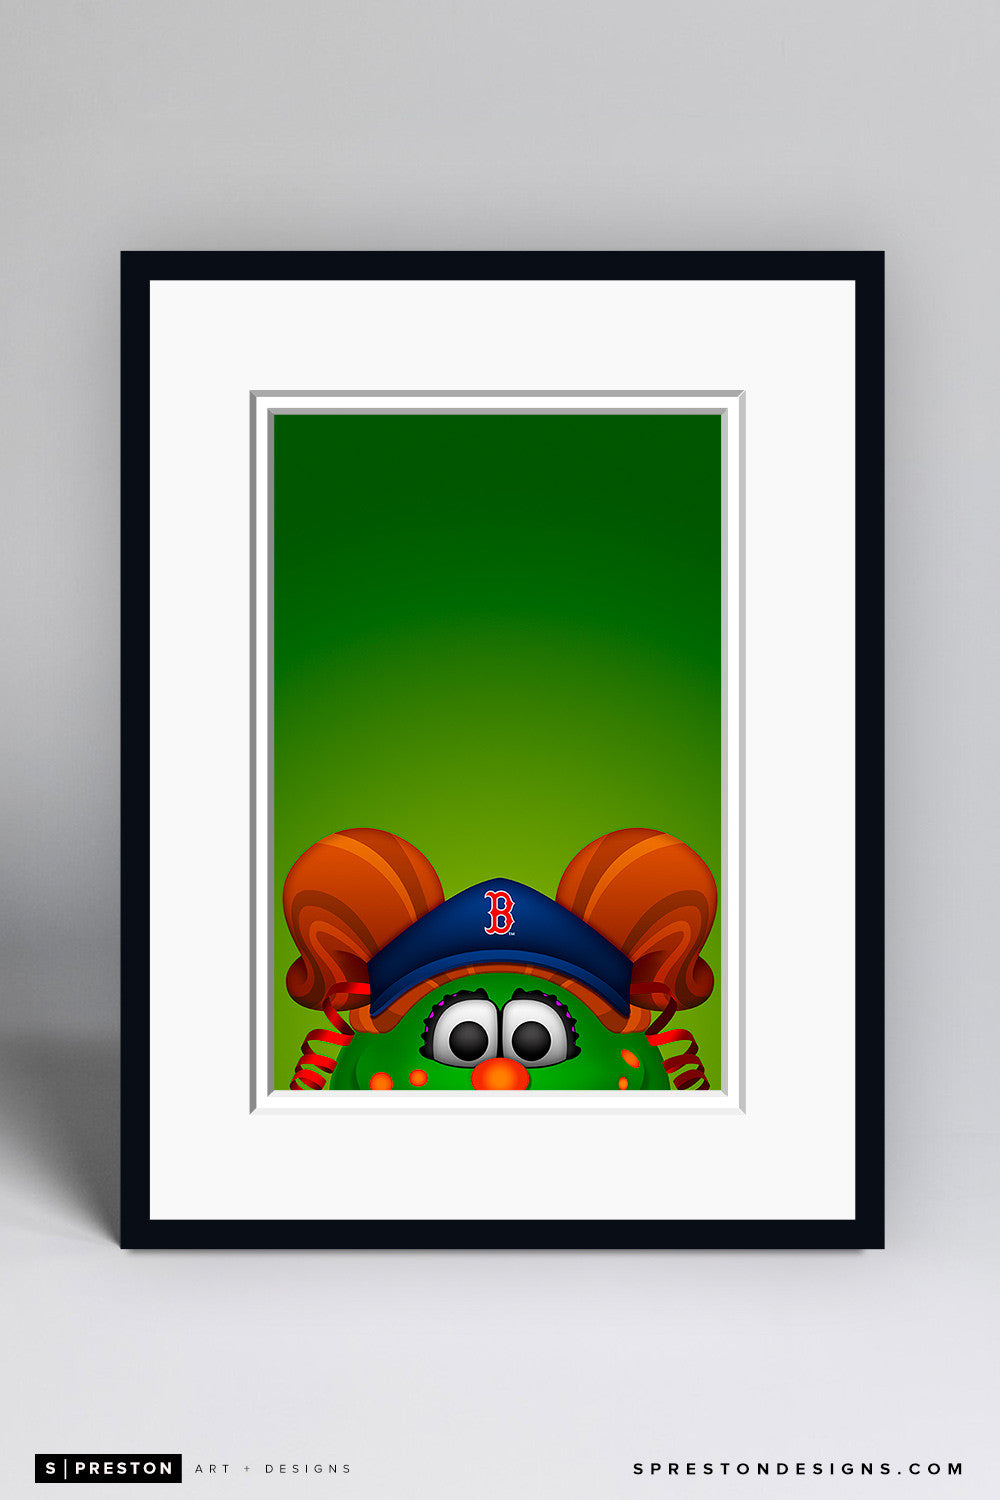 Minimalist Tessie the Green Monster - Boston Red Sox - S. Preston